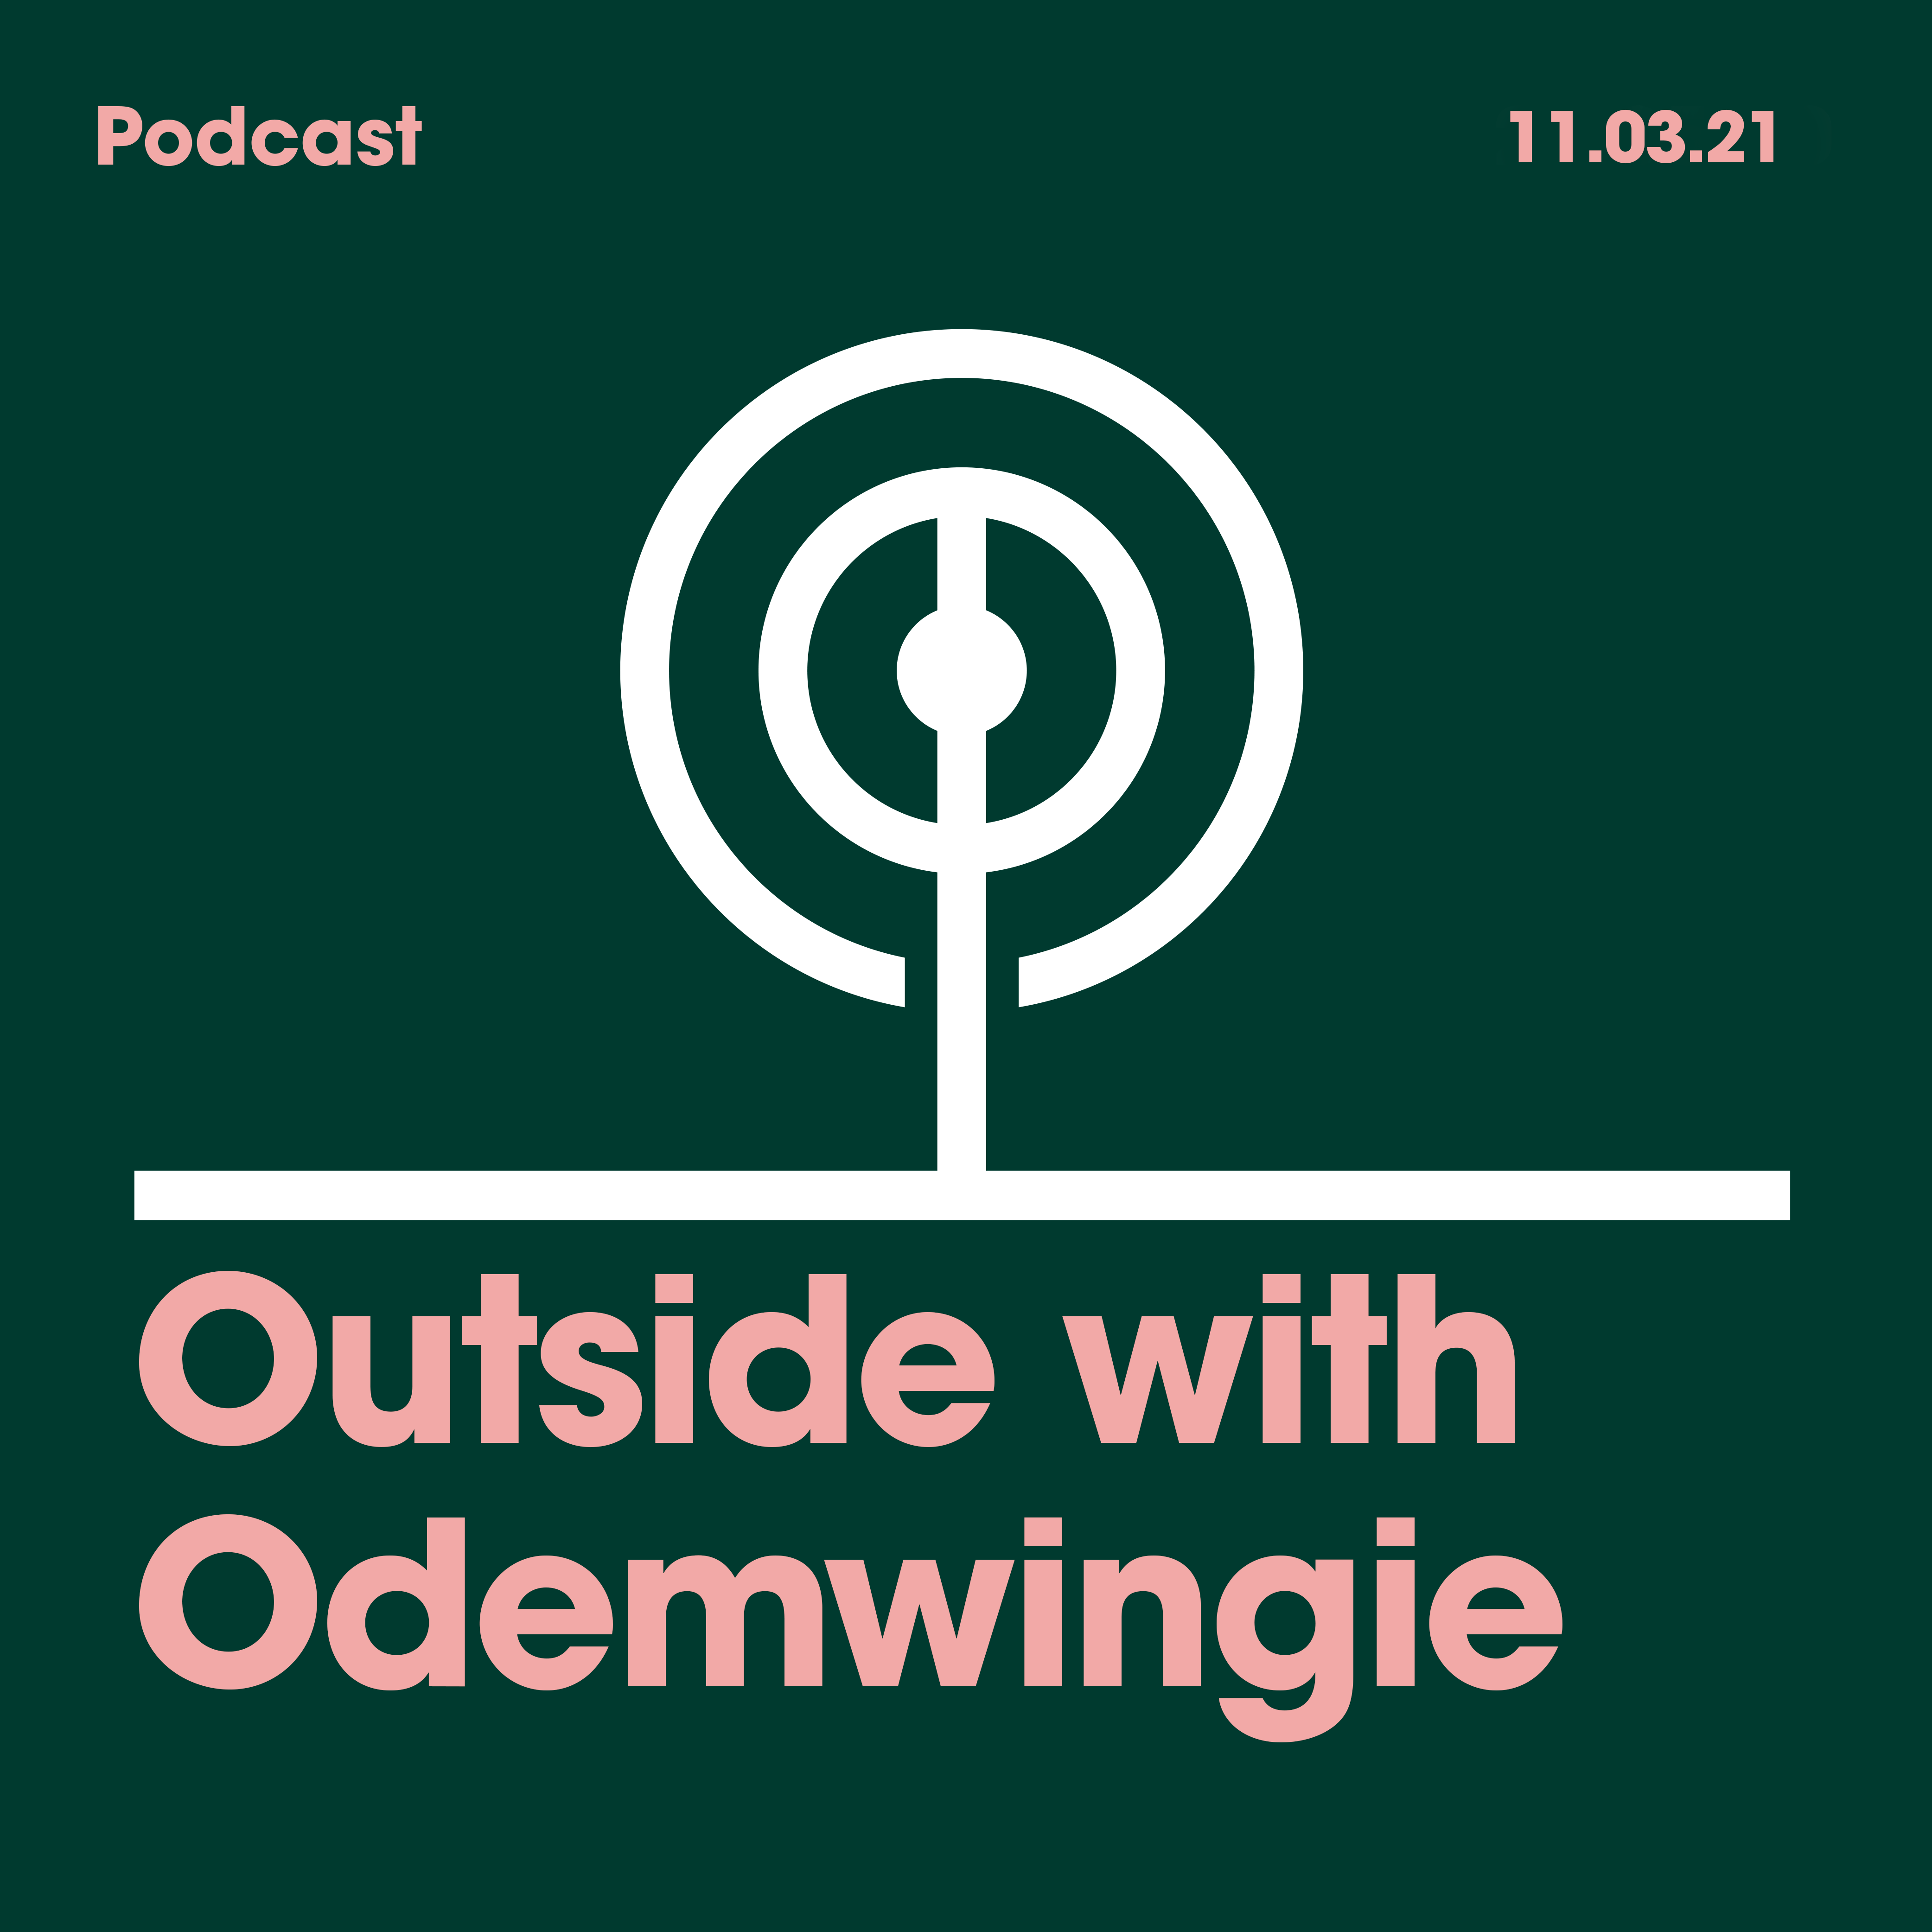 11.03.2021 Outside with Odemwingie